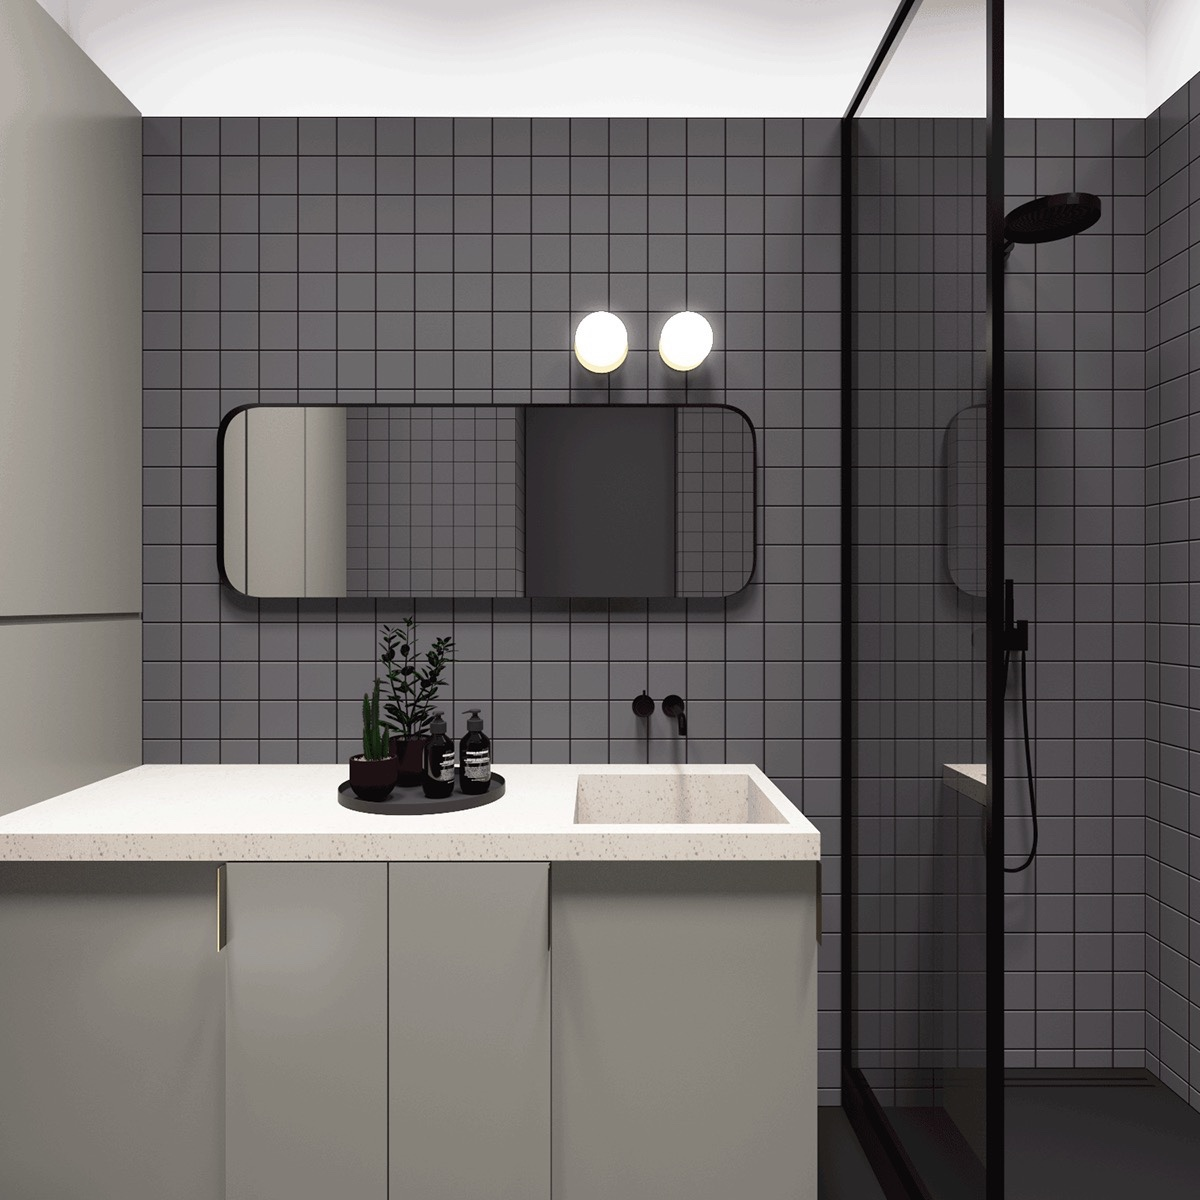 Creative bathroom design for small apartment